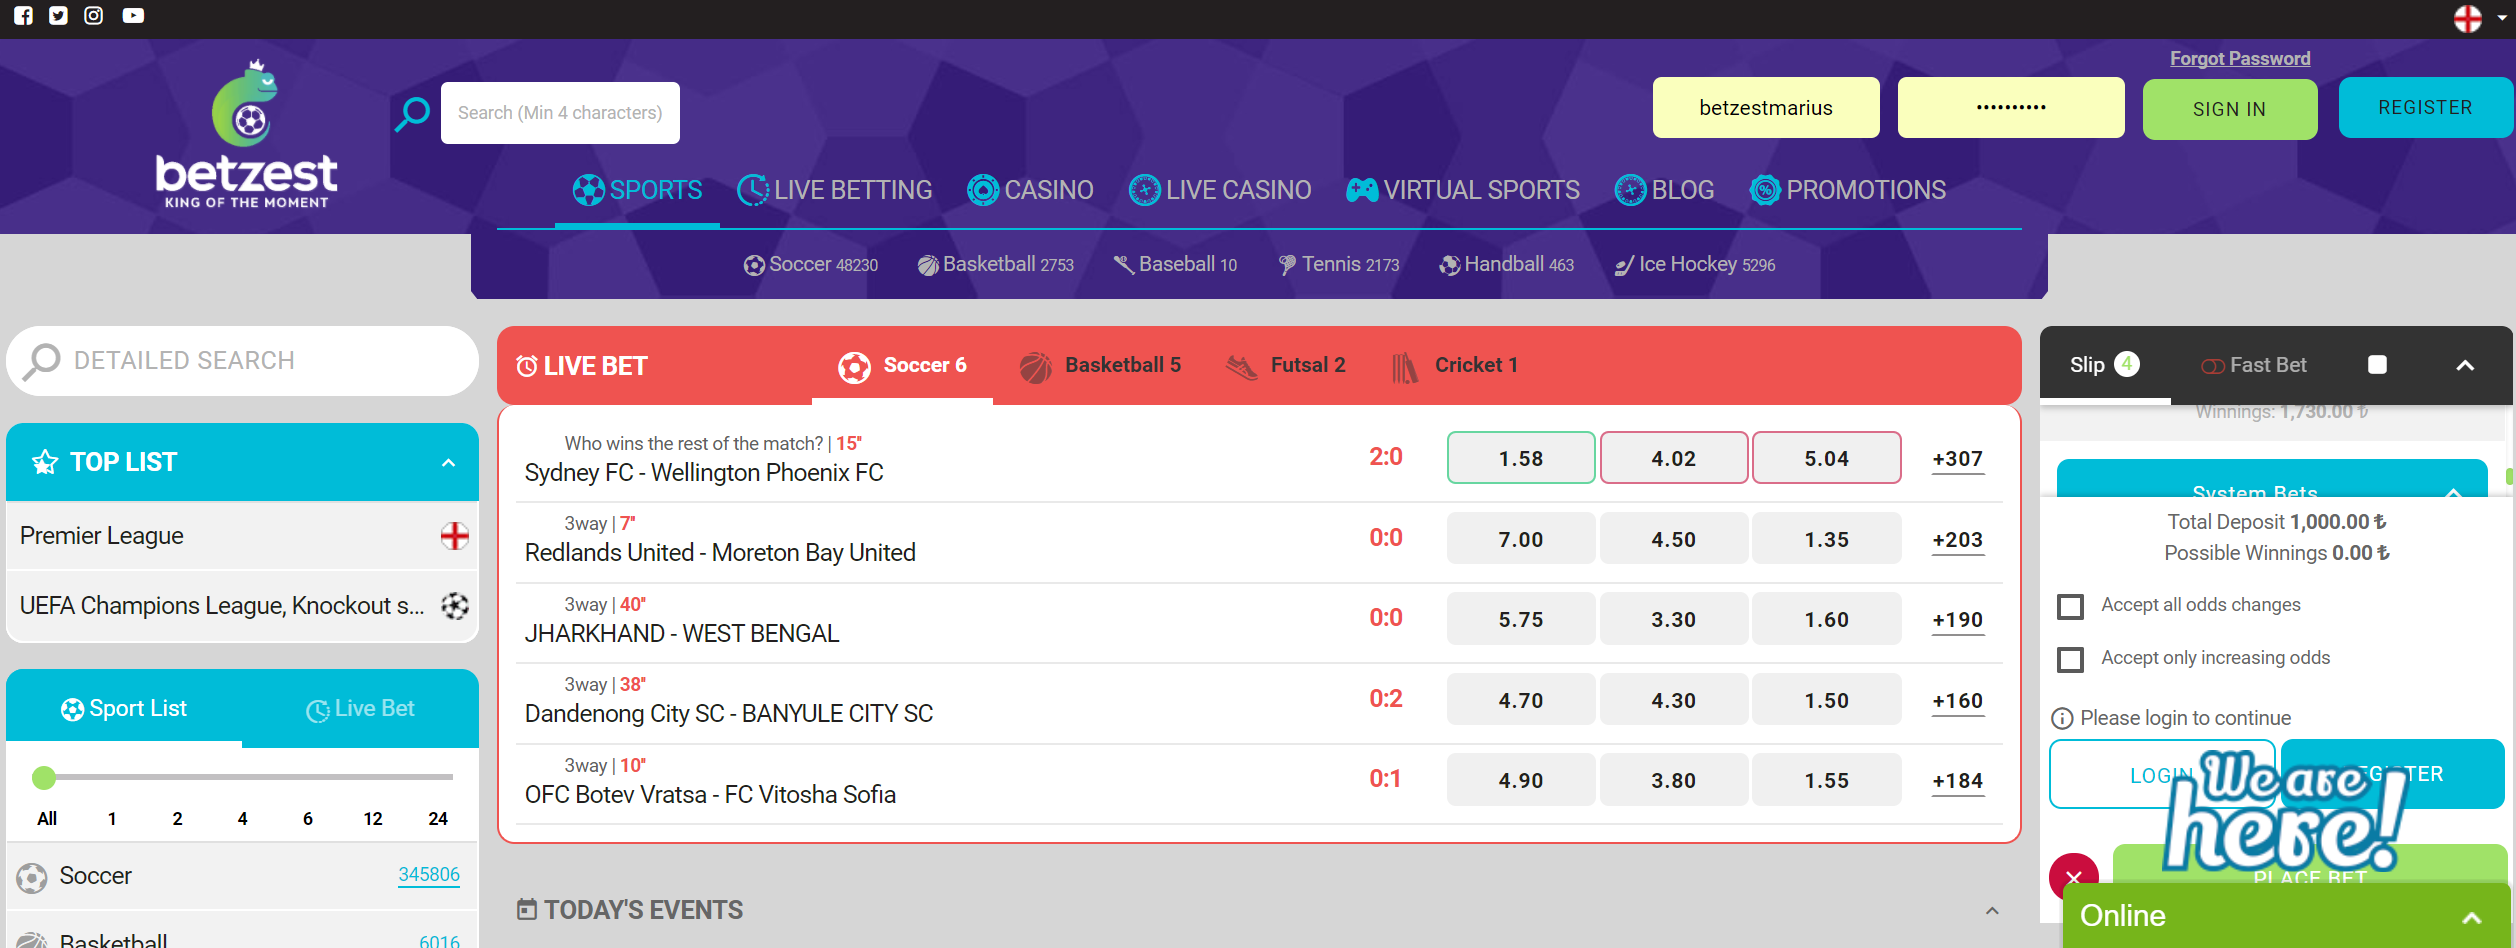 betzest casino and sportsbook